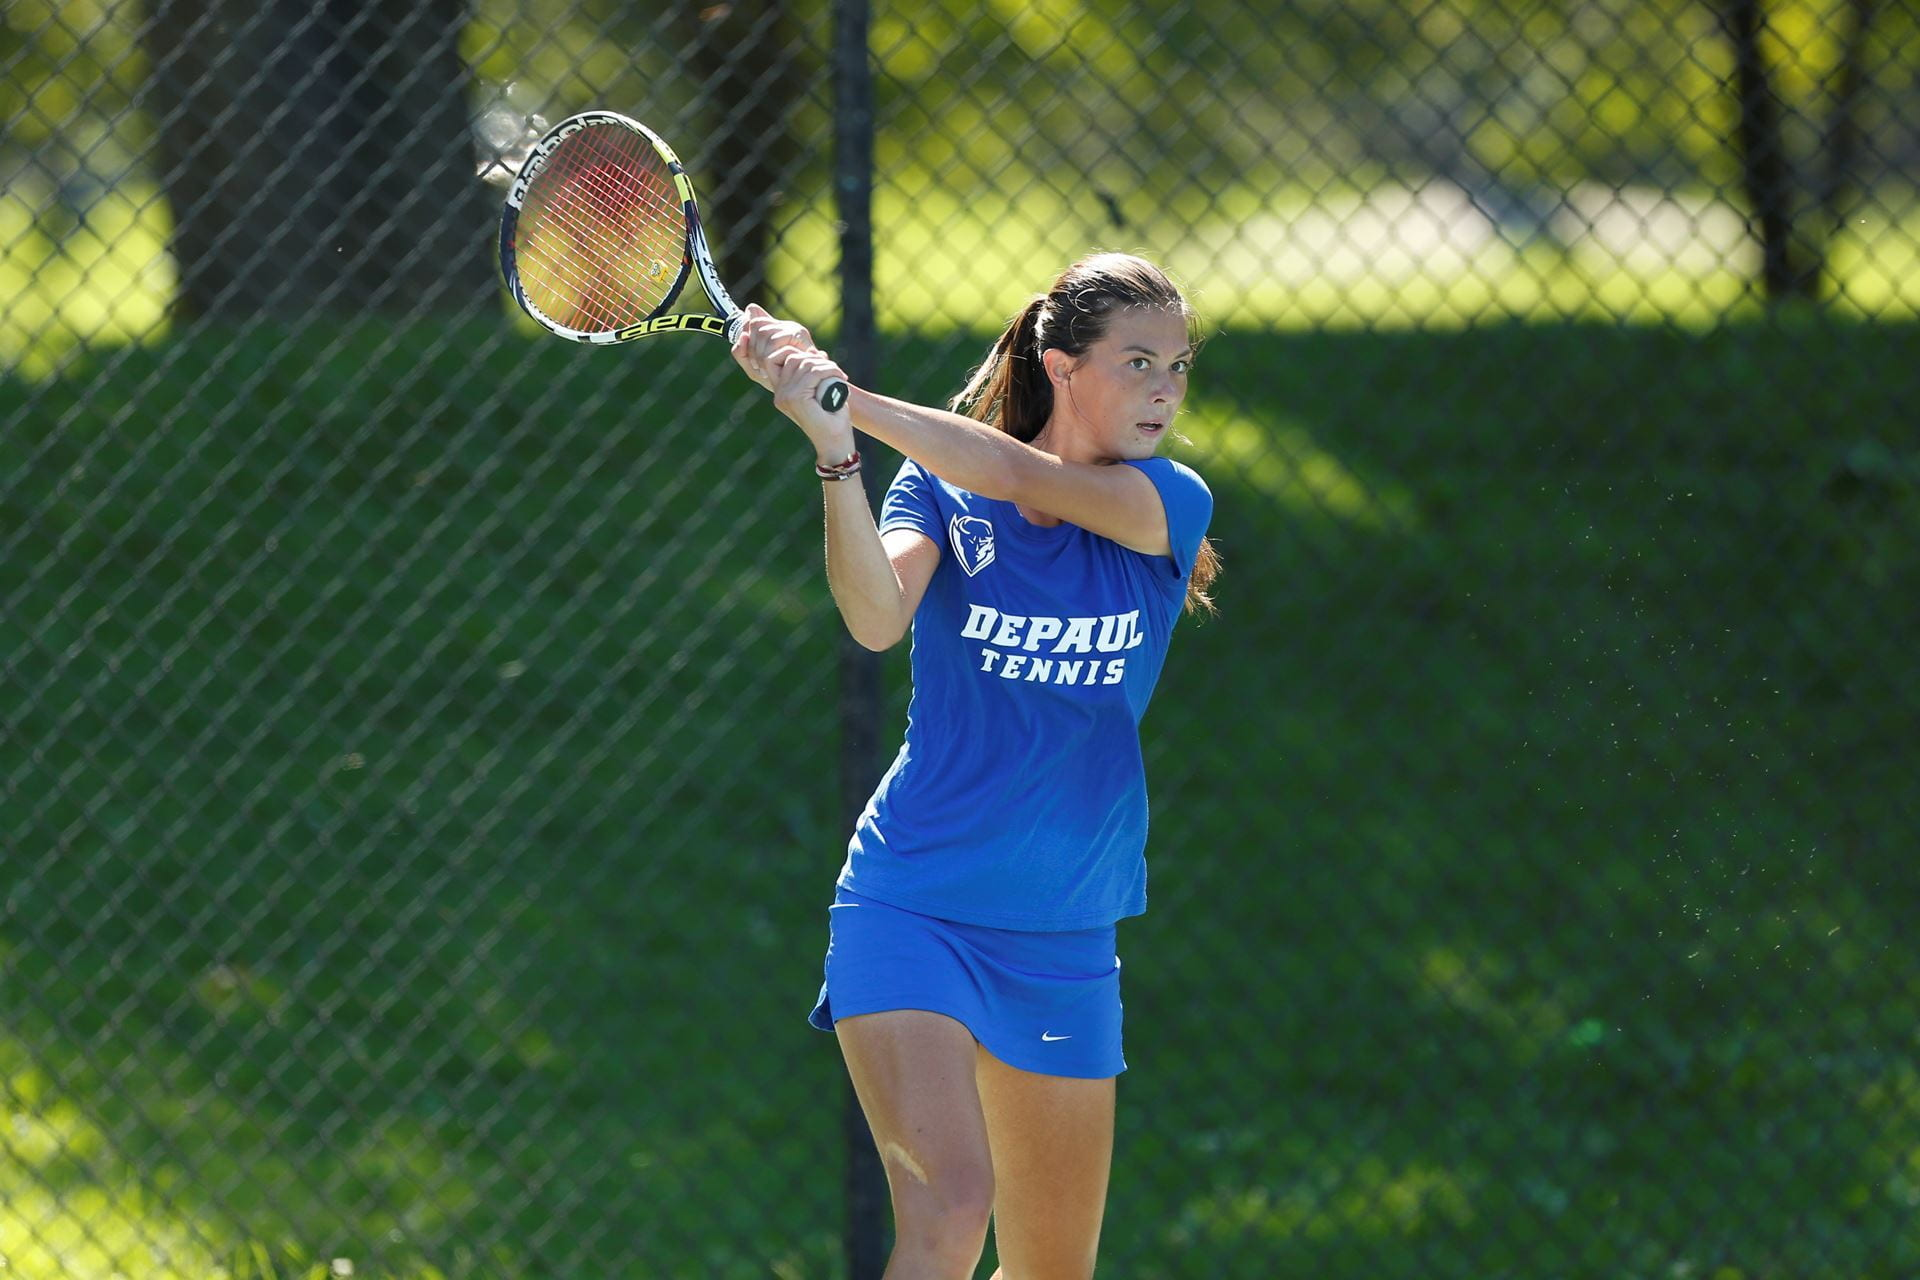 Rebeca Mitrea playing for DePaul University's women's Division I tennis team